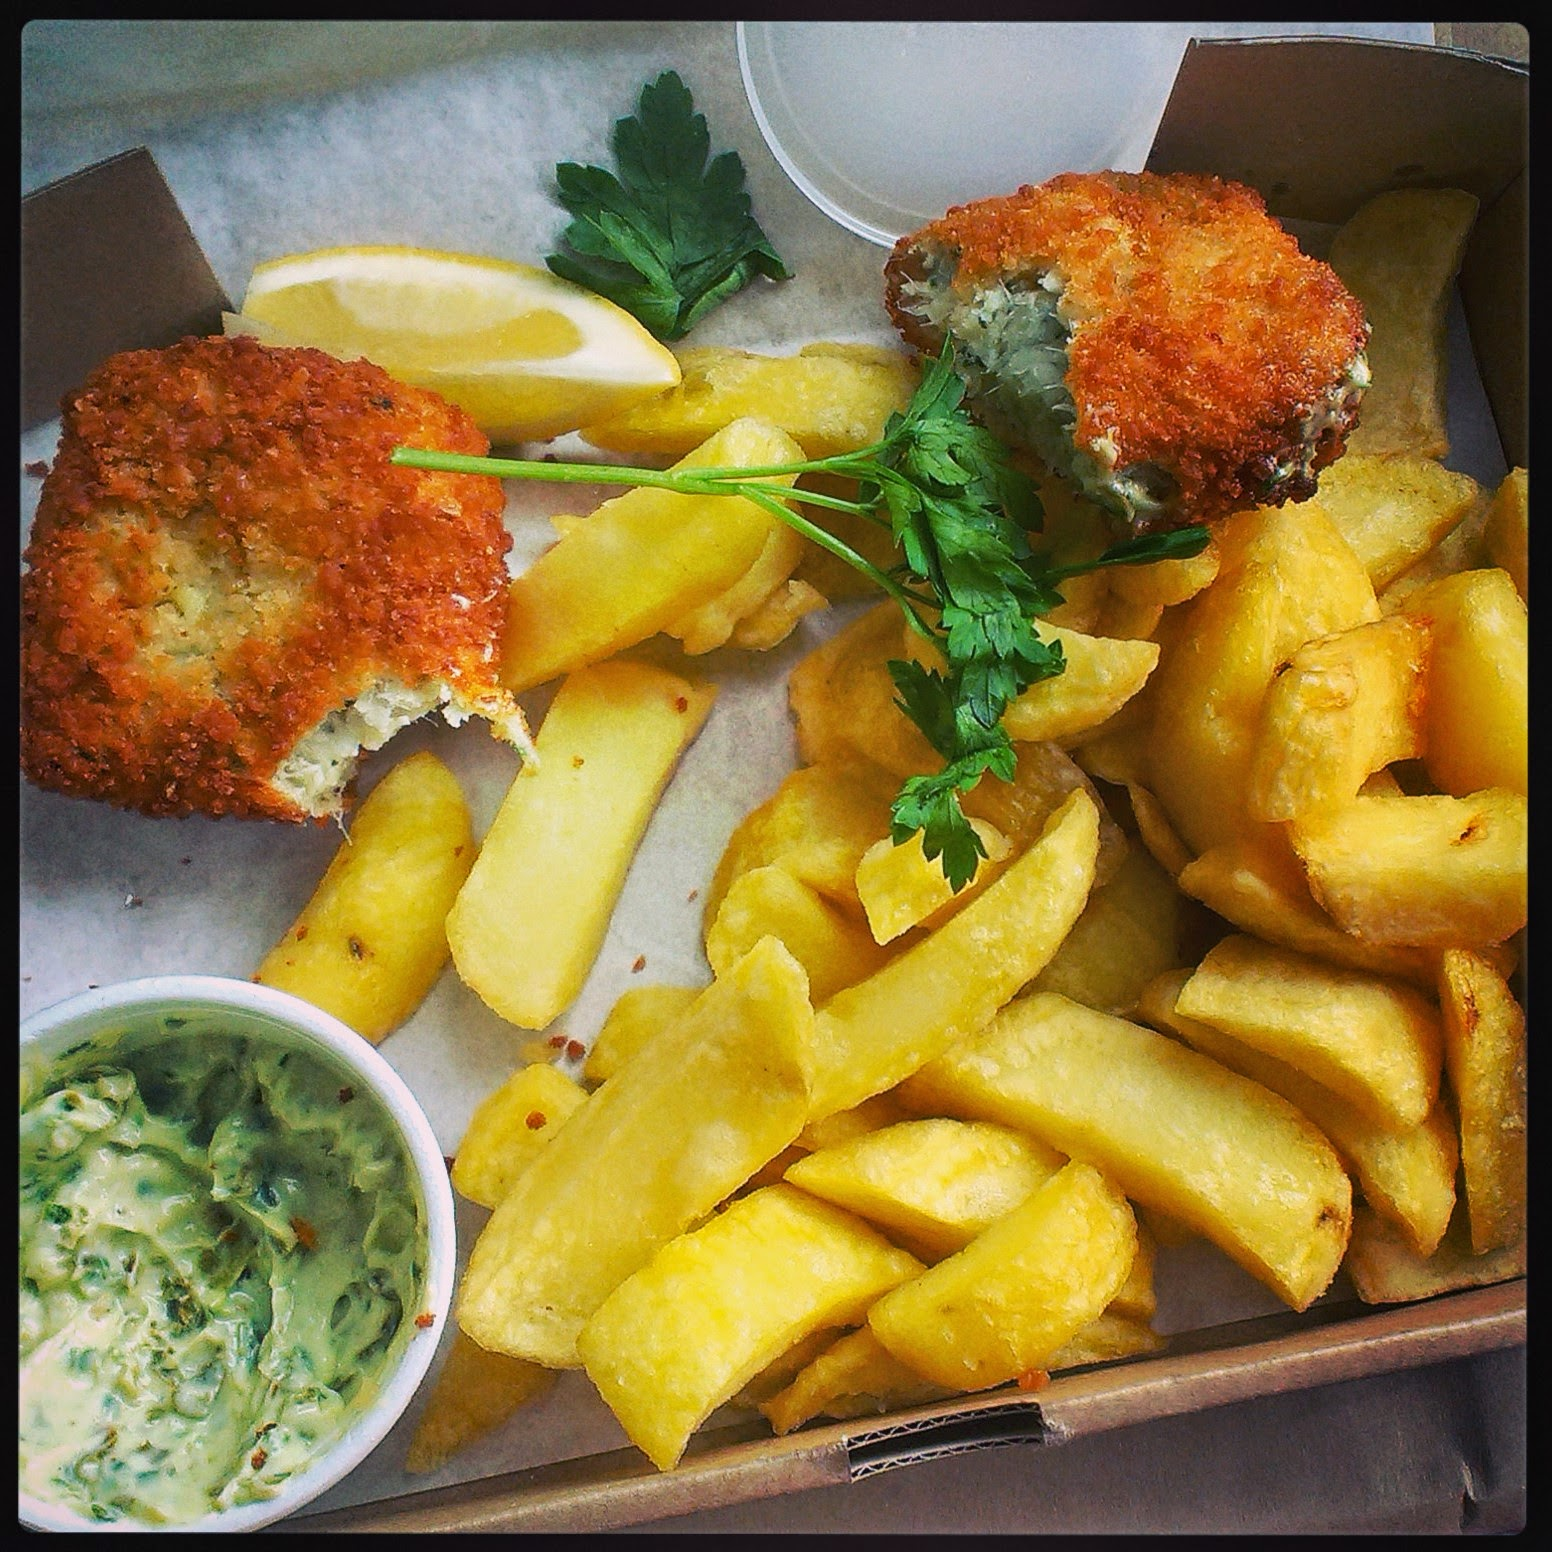 Ths Scallop Shell fishcakes and chips